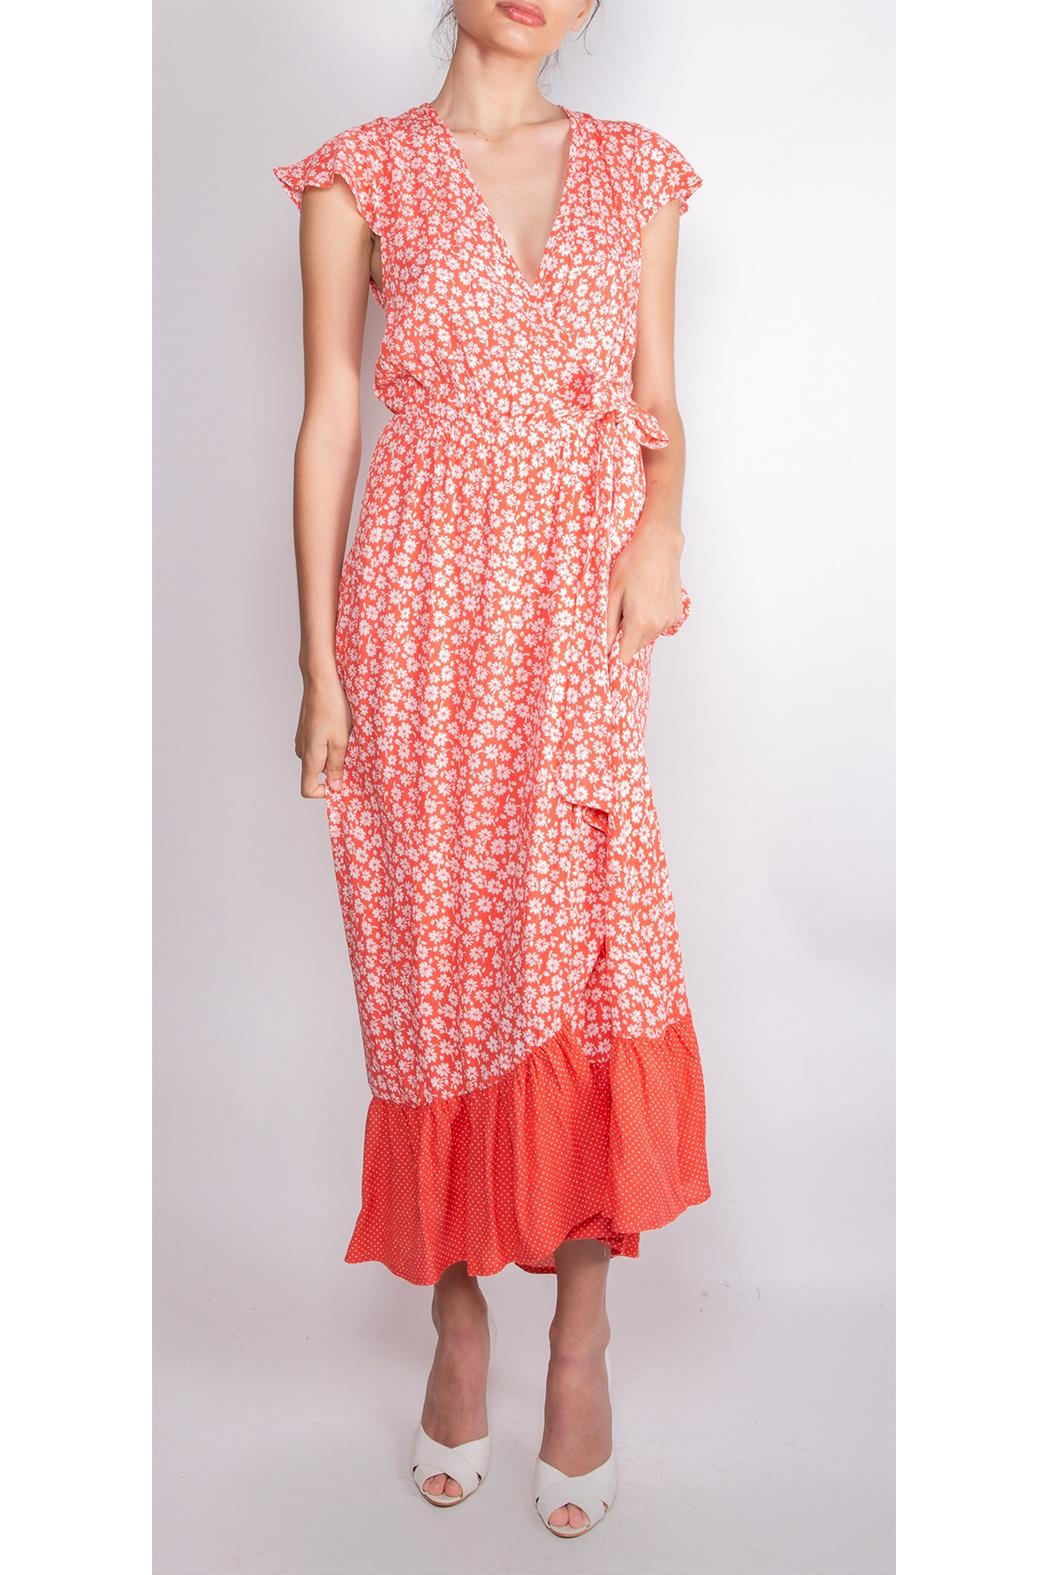 Illa Illa Happiness Floral Wrap-Dress - Front Cropped Image